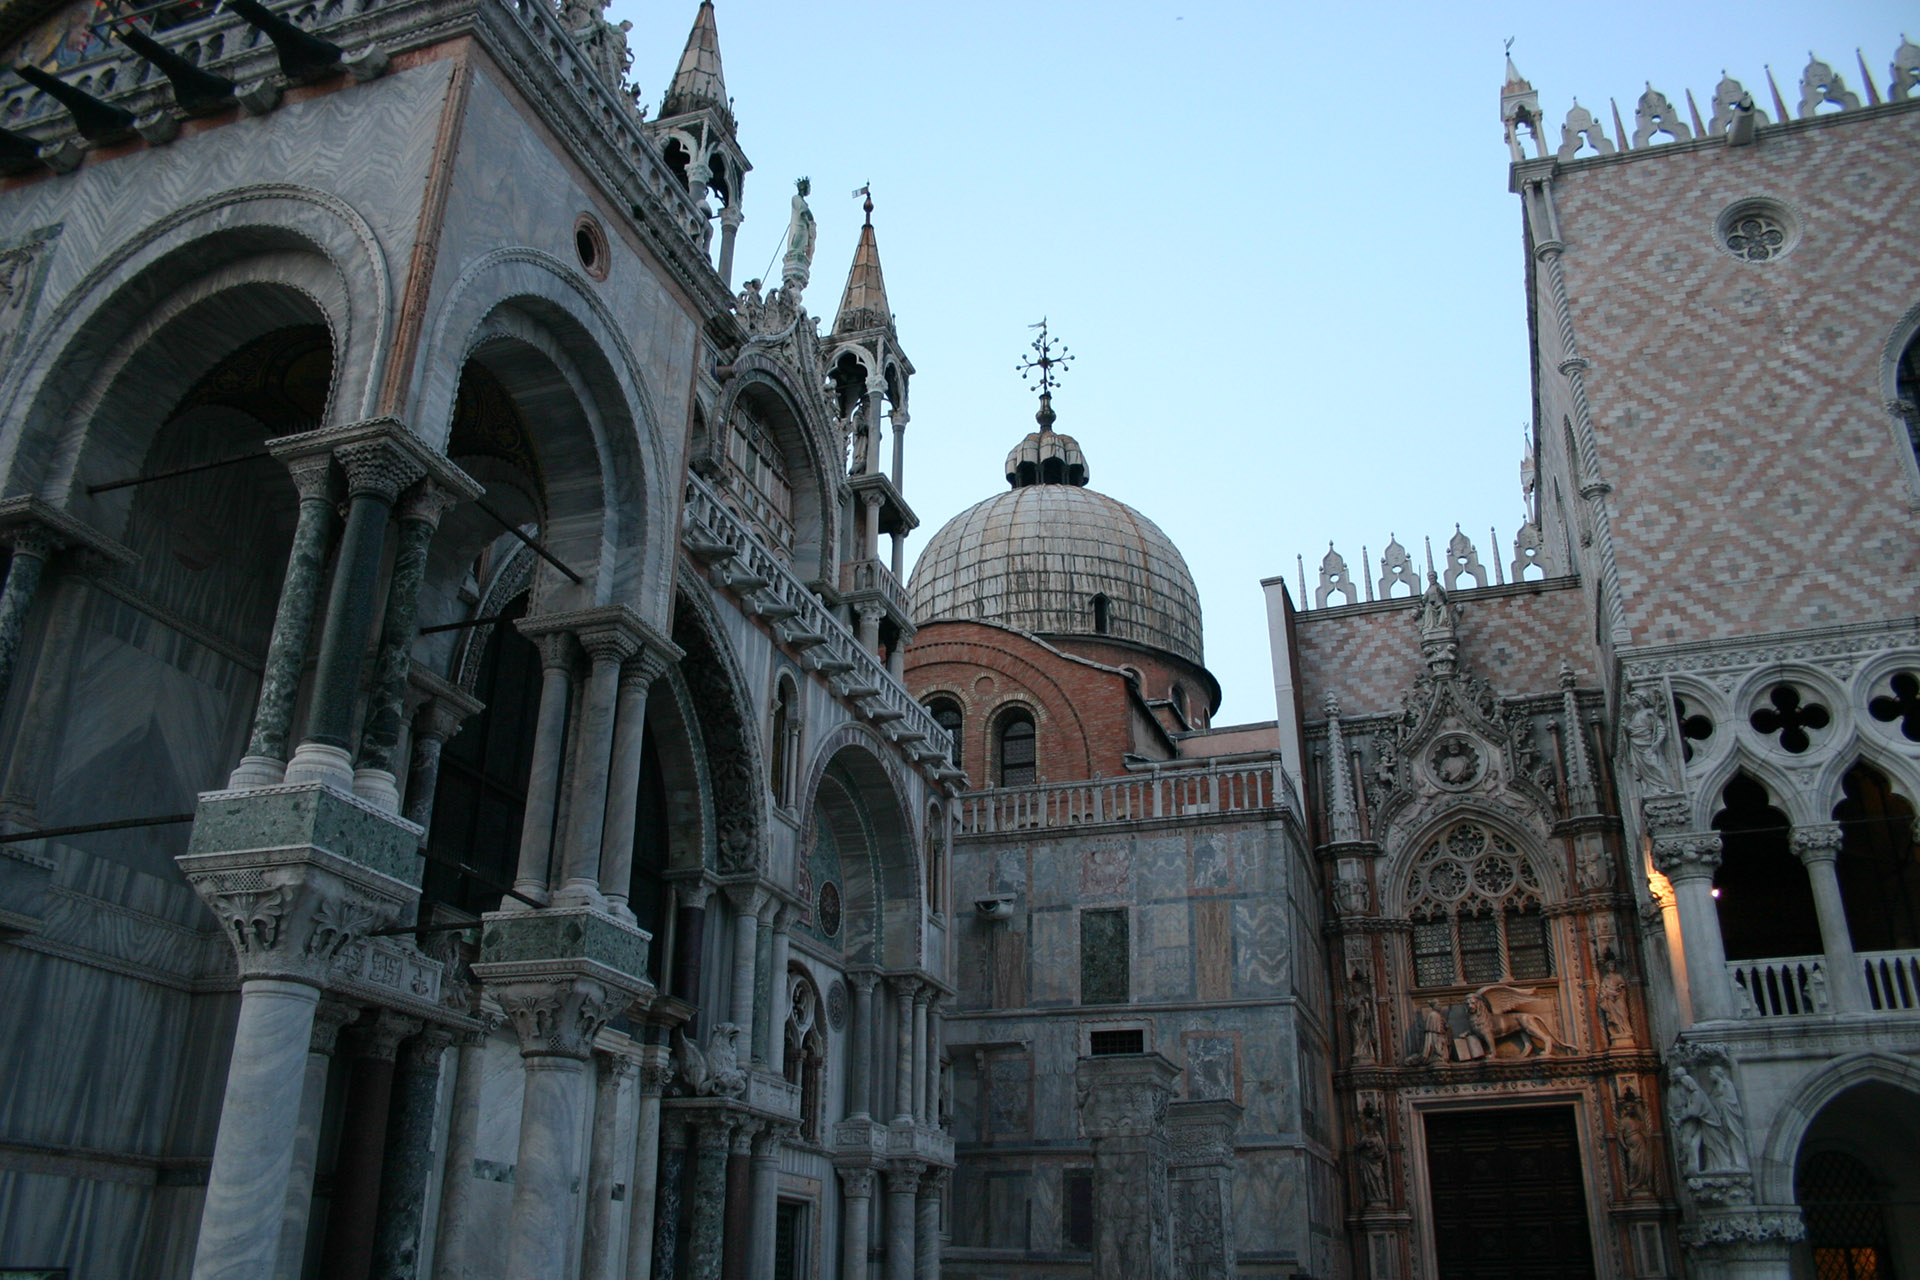 Piazza_Venice_IMG_6096_sm